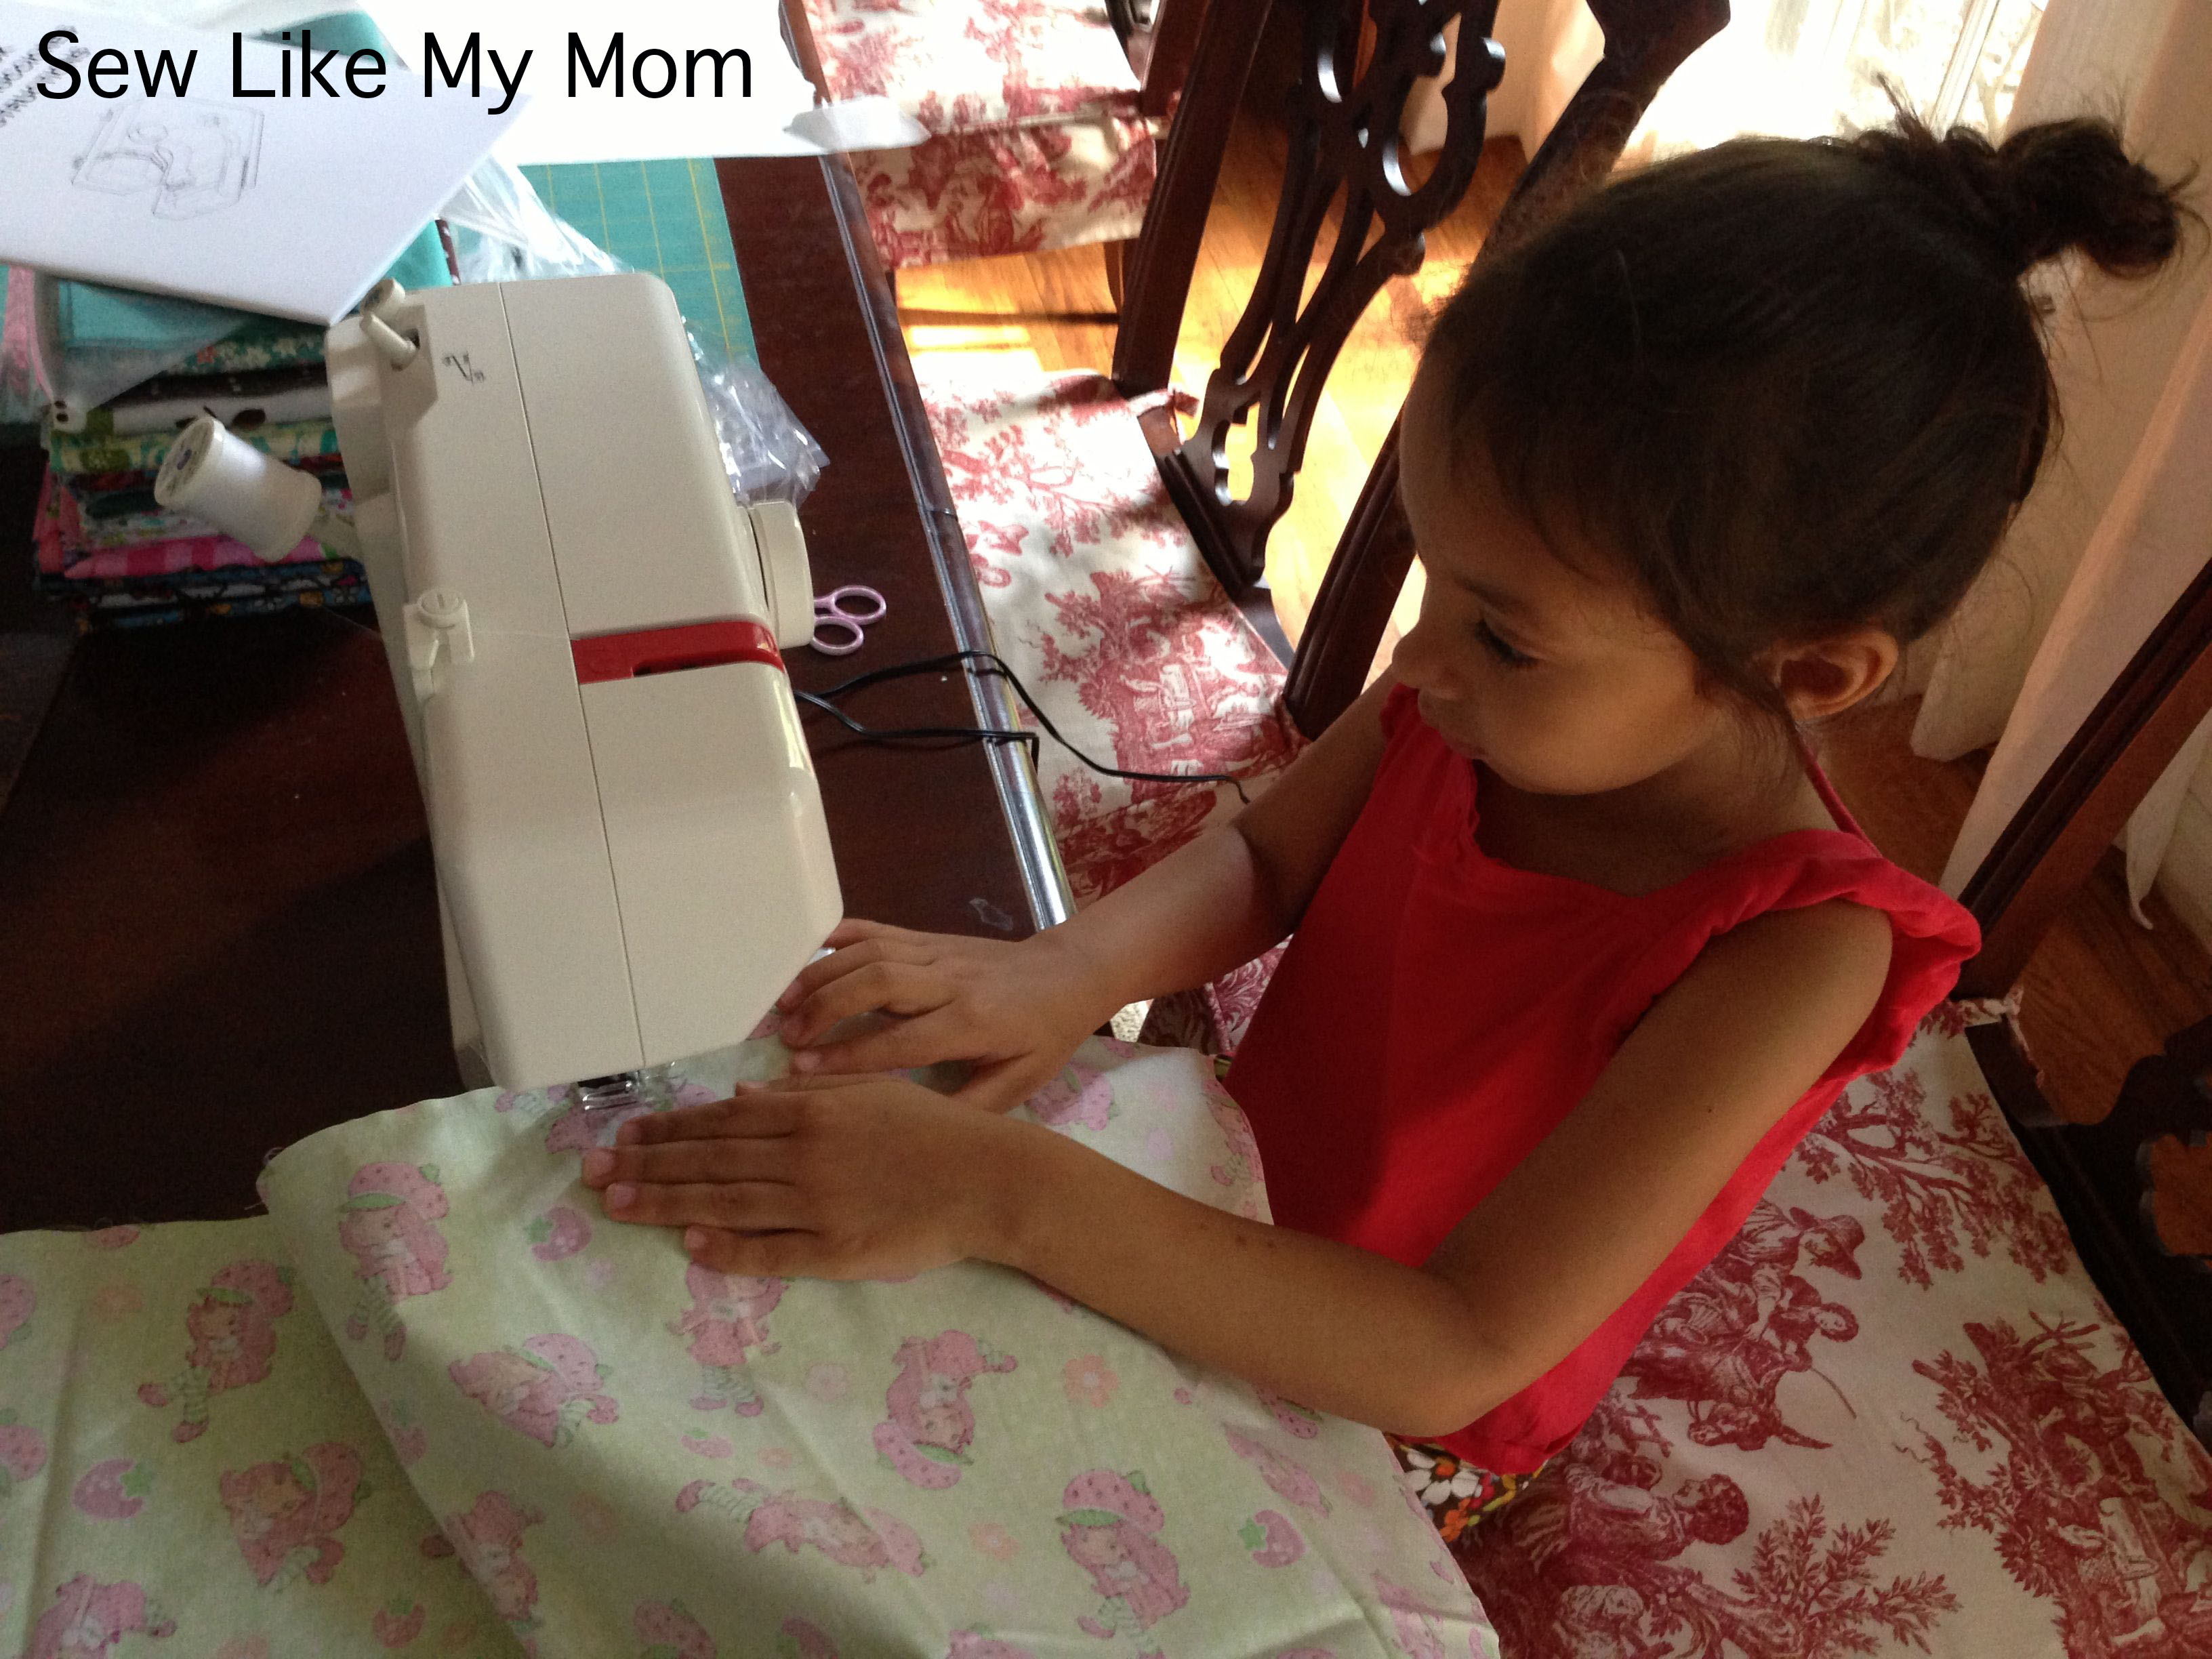 Sew Like My Mom | Why I Sew